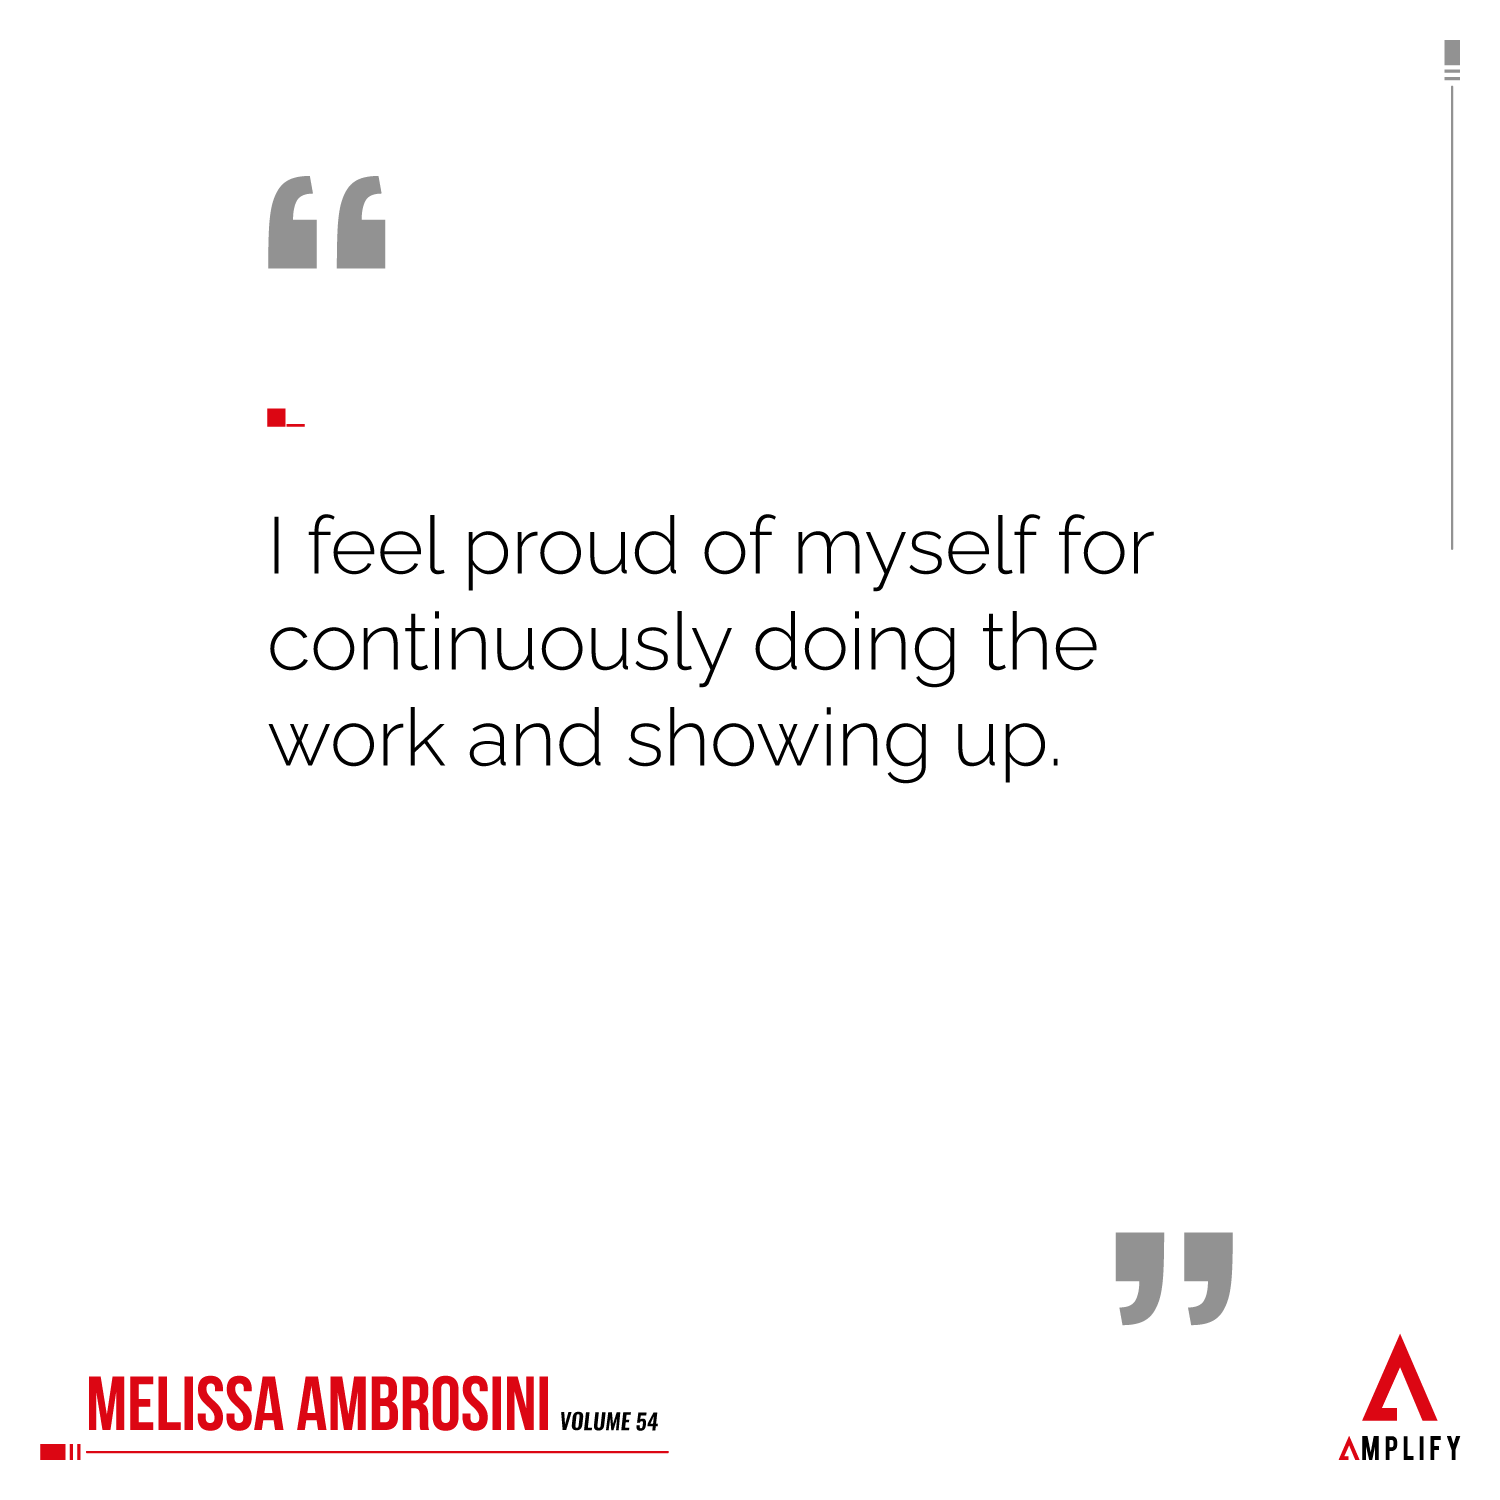 Quote: I feel proud of myself for continuously doing the work and showing up.